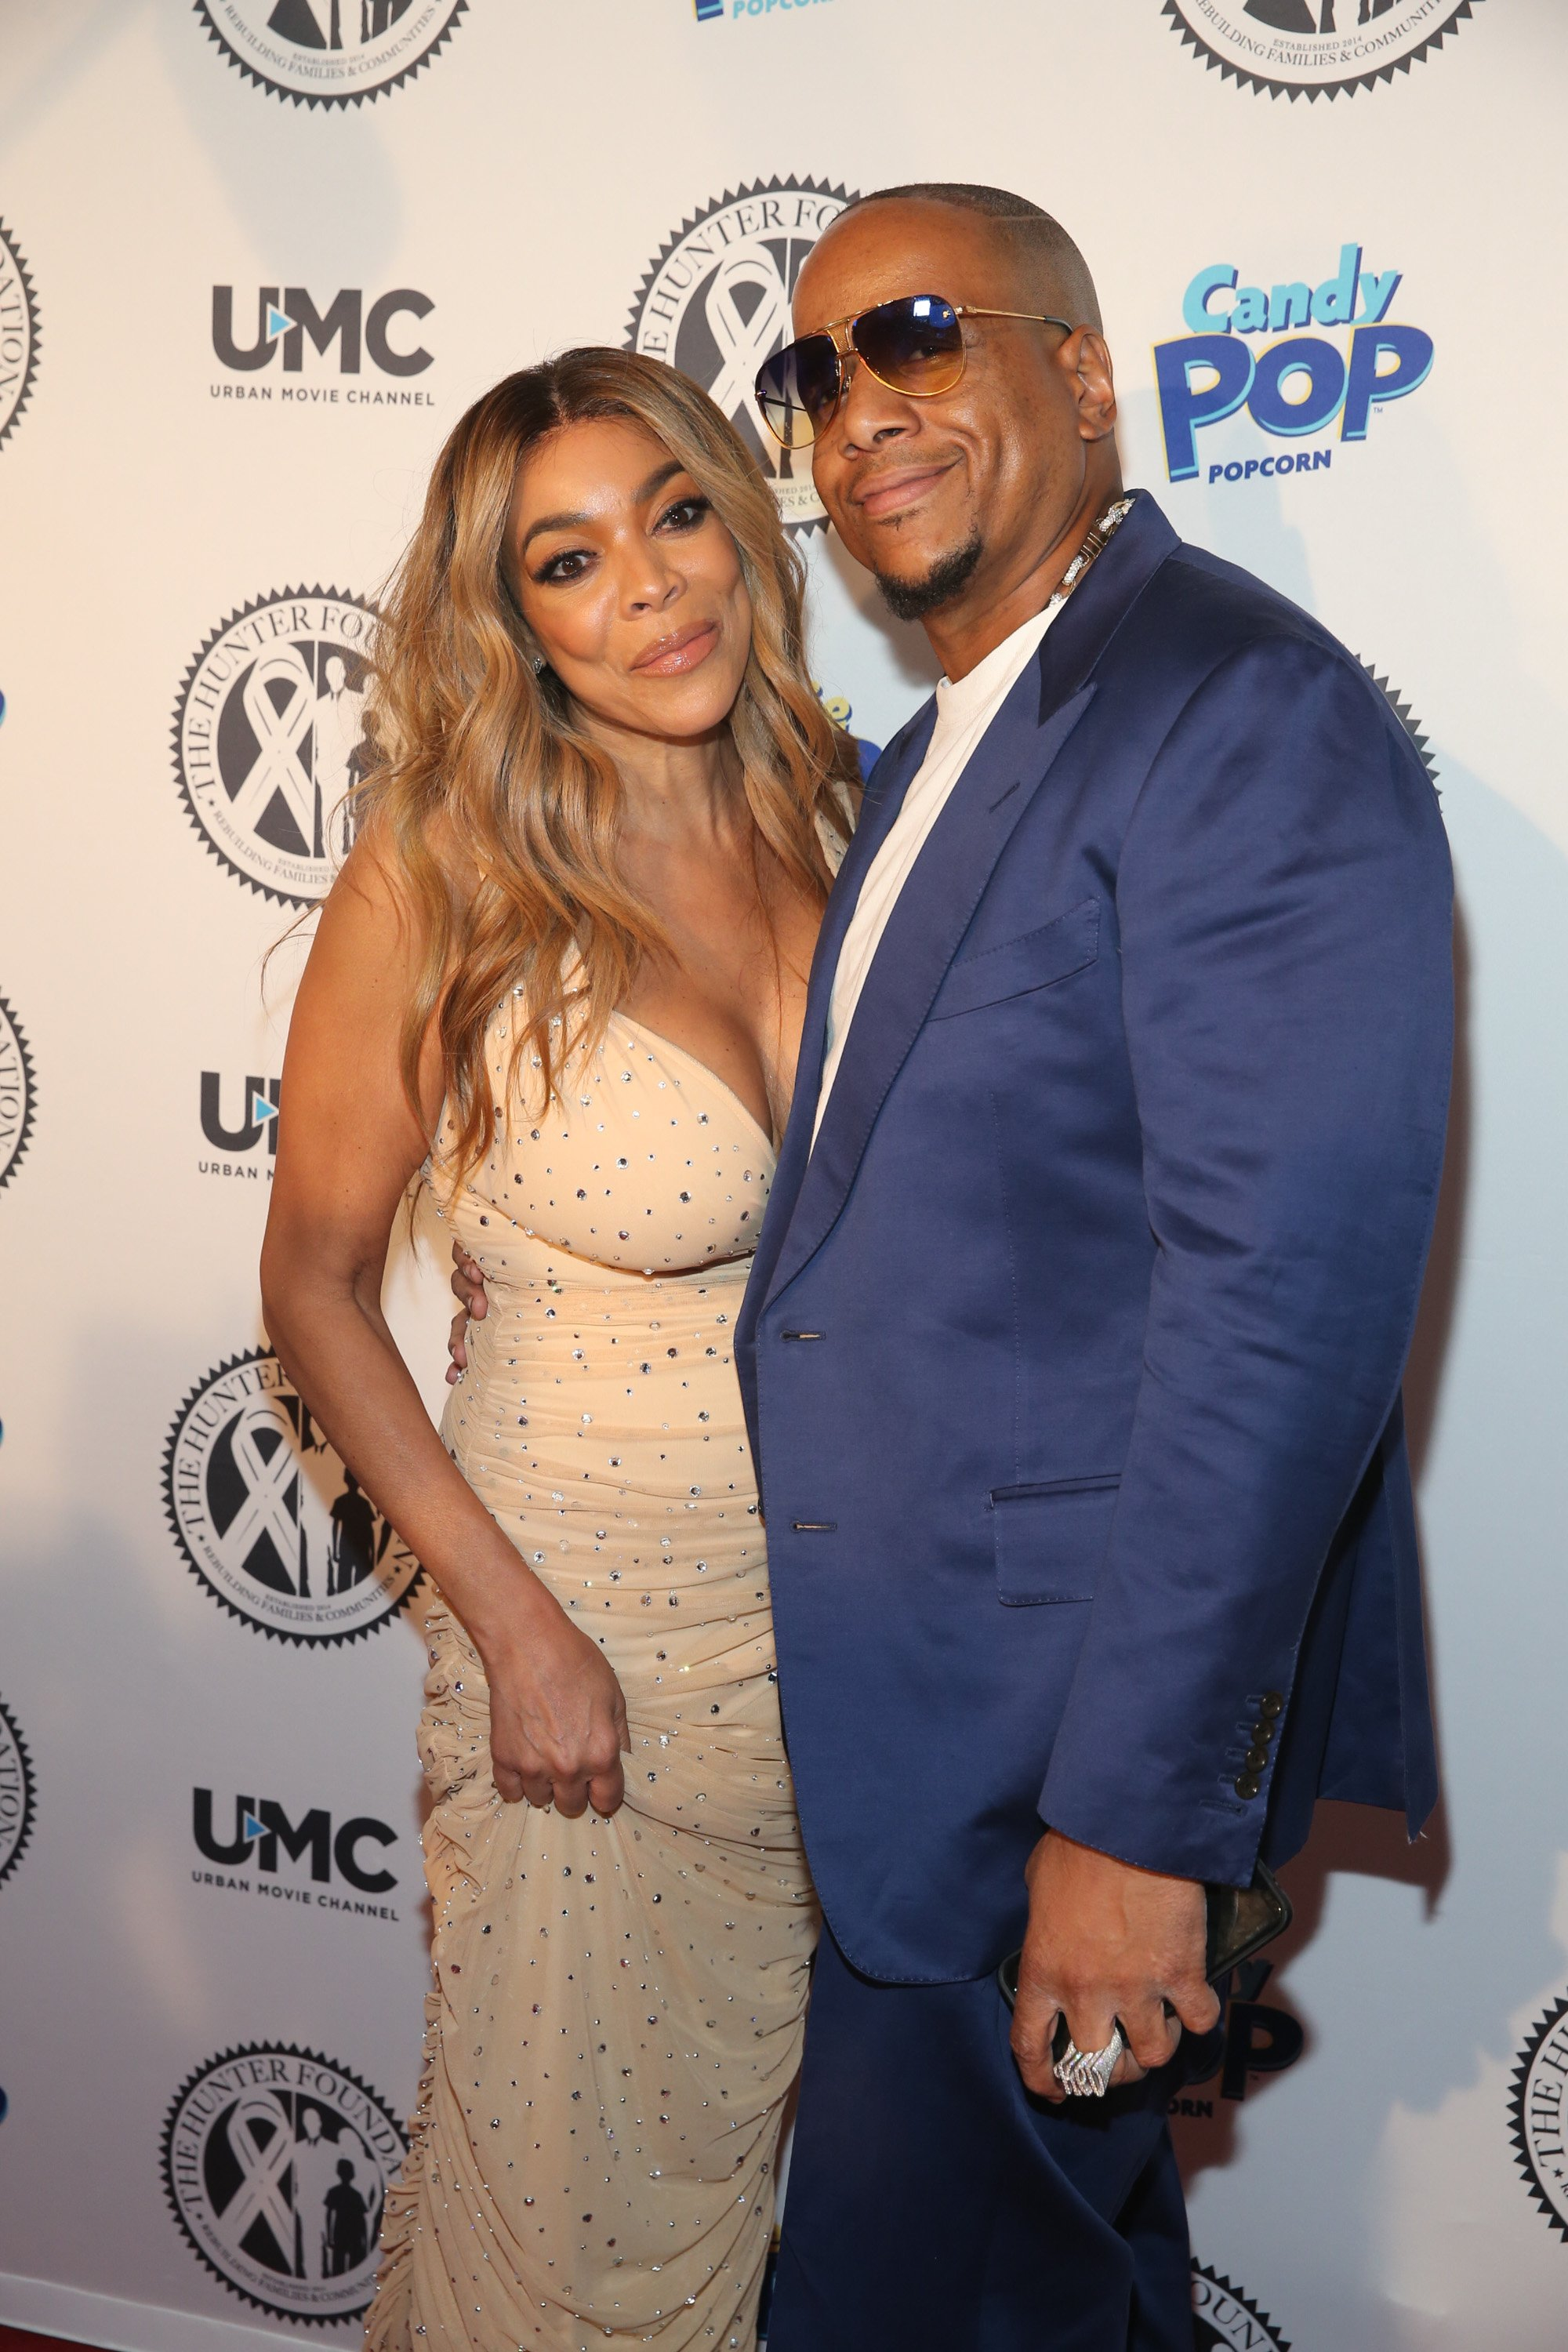 Wendy Williams aux côtés de Kevin Hunter. l Source : Getty Images